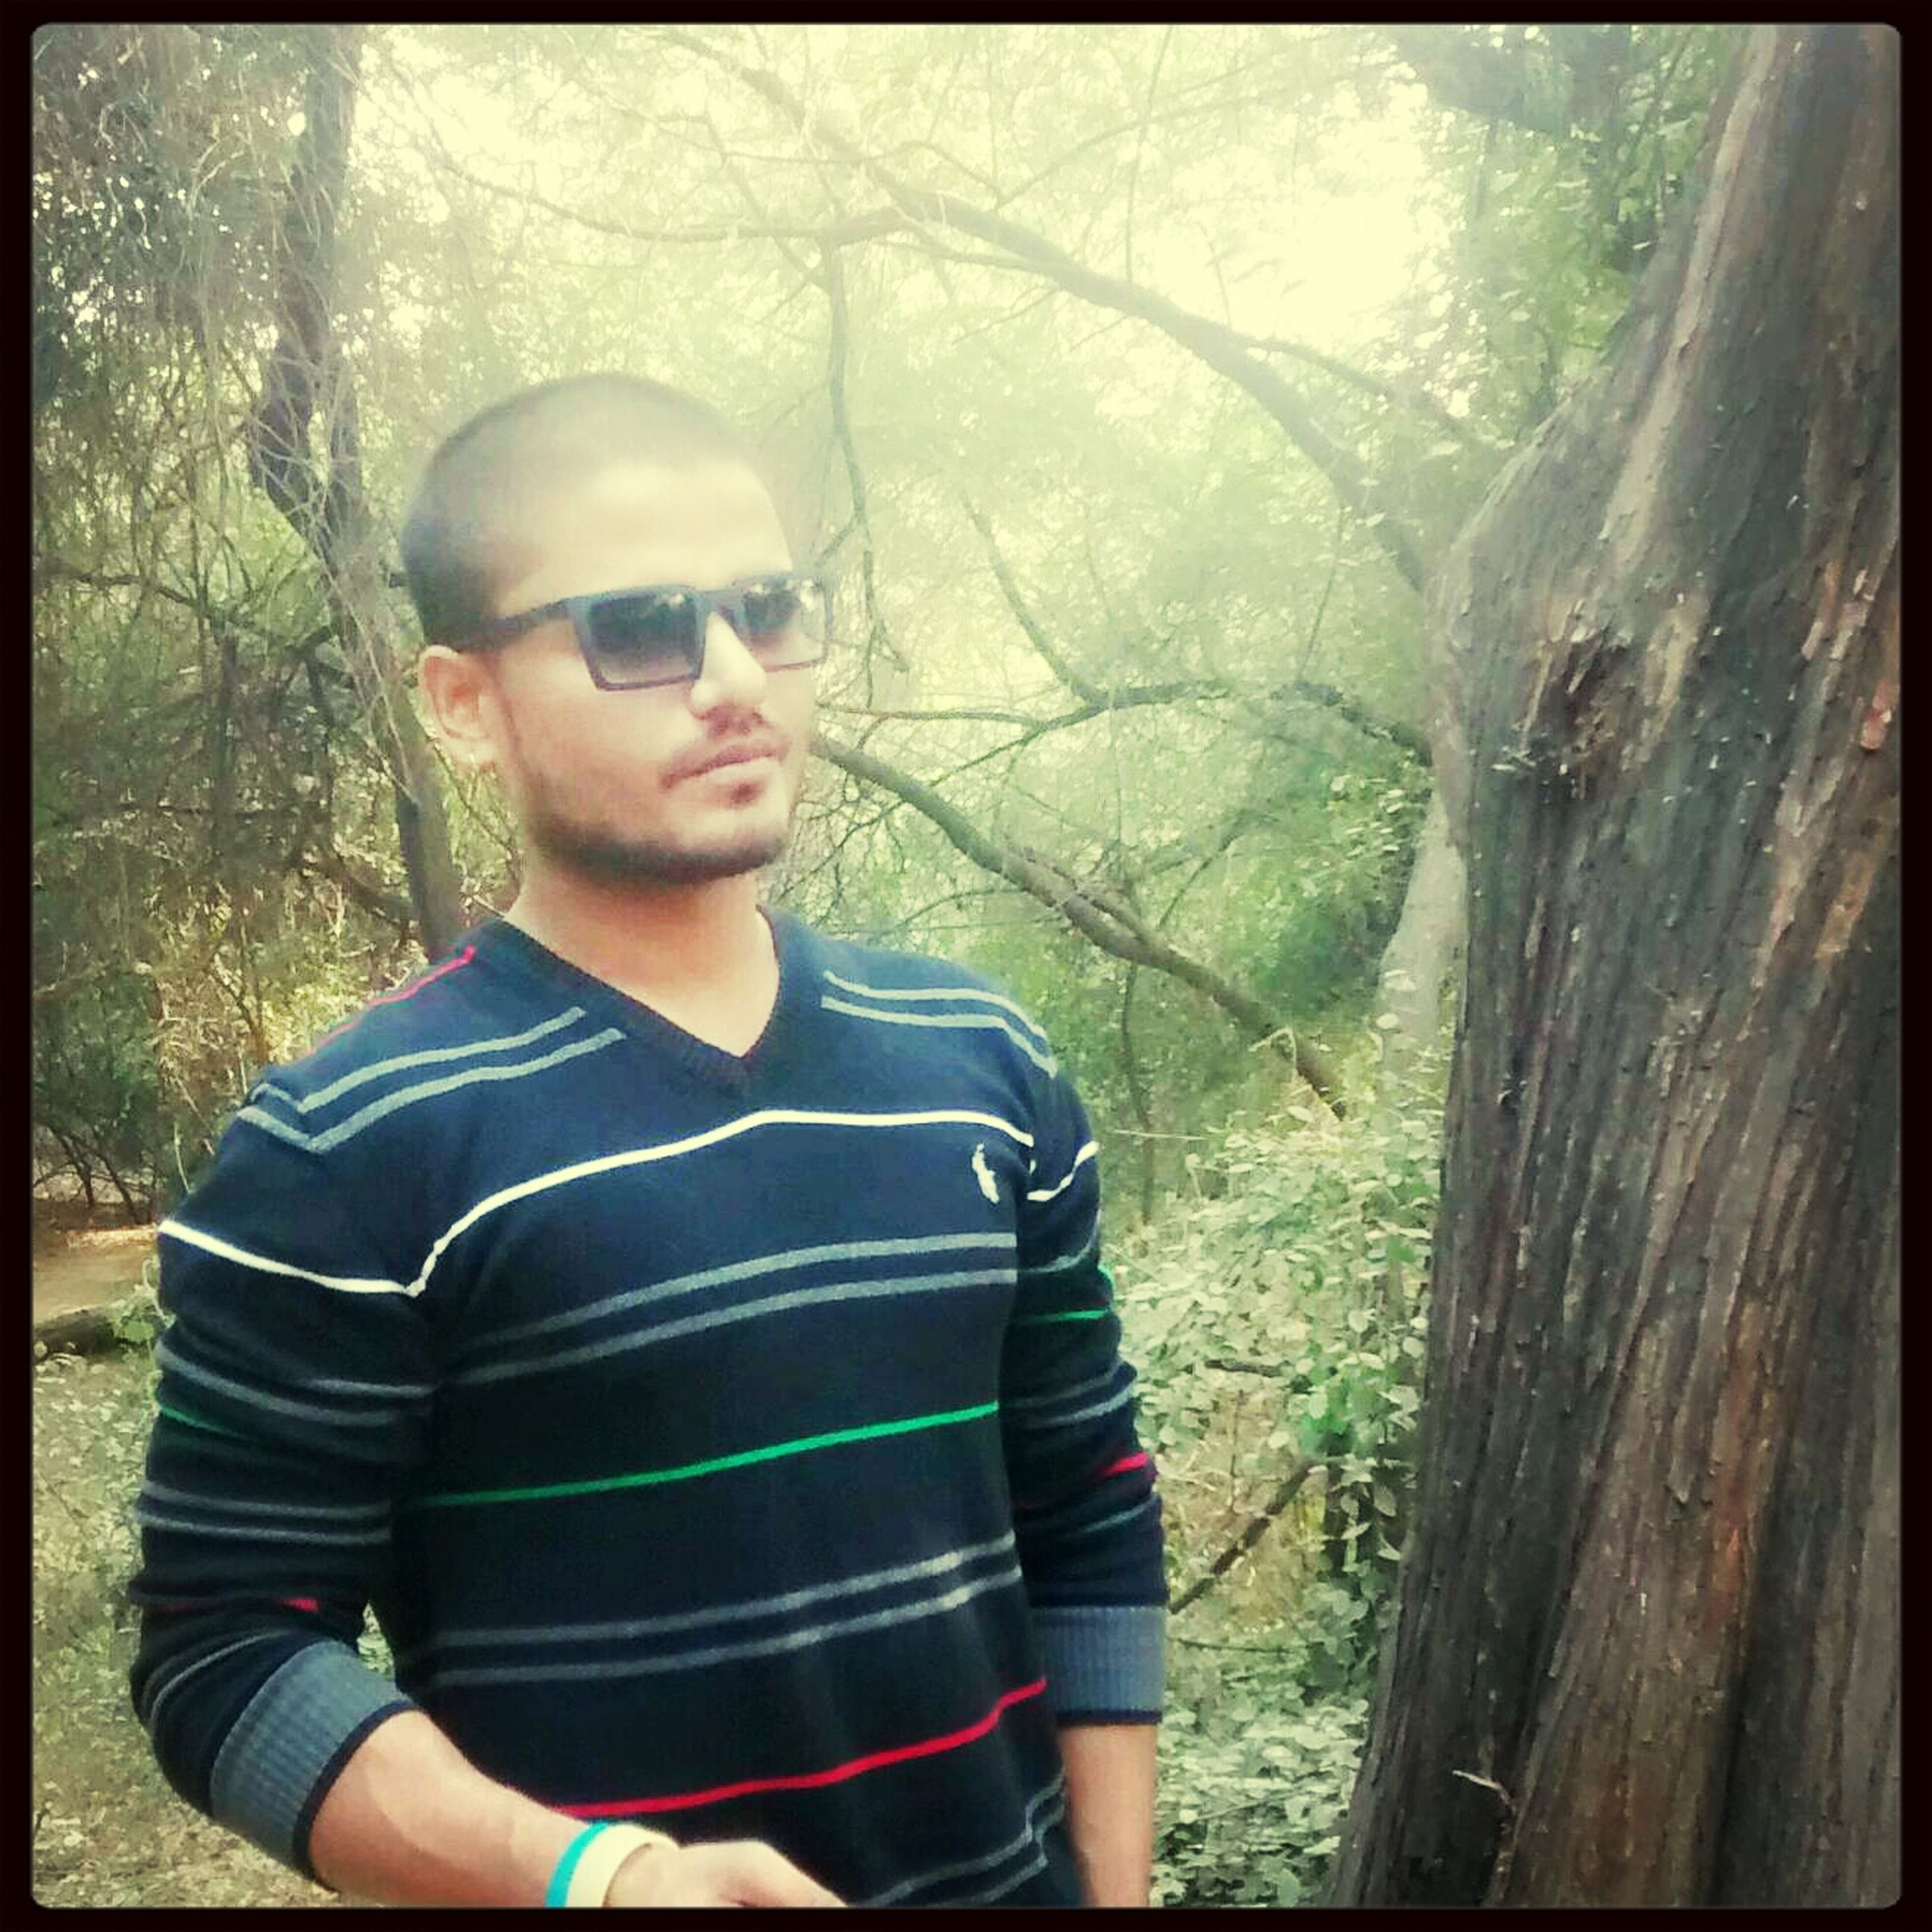 lifestyles, leisure activity, transfer print, casual clothing, person, young adult, looking at camera, portrait, auto post production filter, front view, tree, young men, three quarter length, sunglasses, waist up, standing, smiling, holding